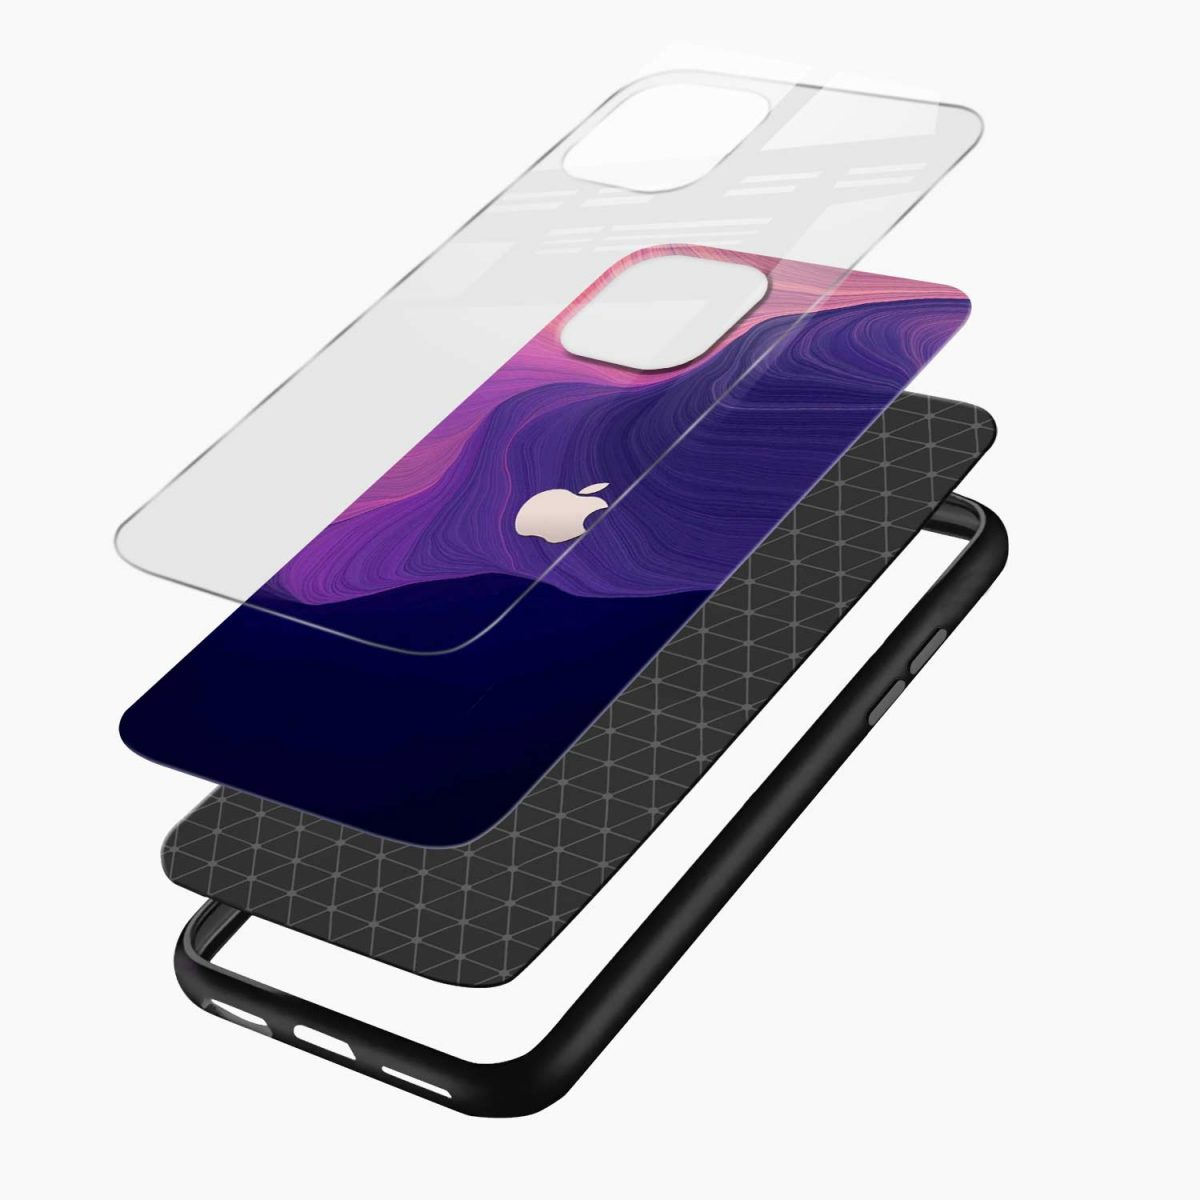 simply classic iphone pro back cover layers view